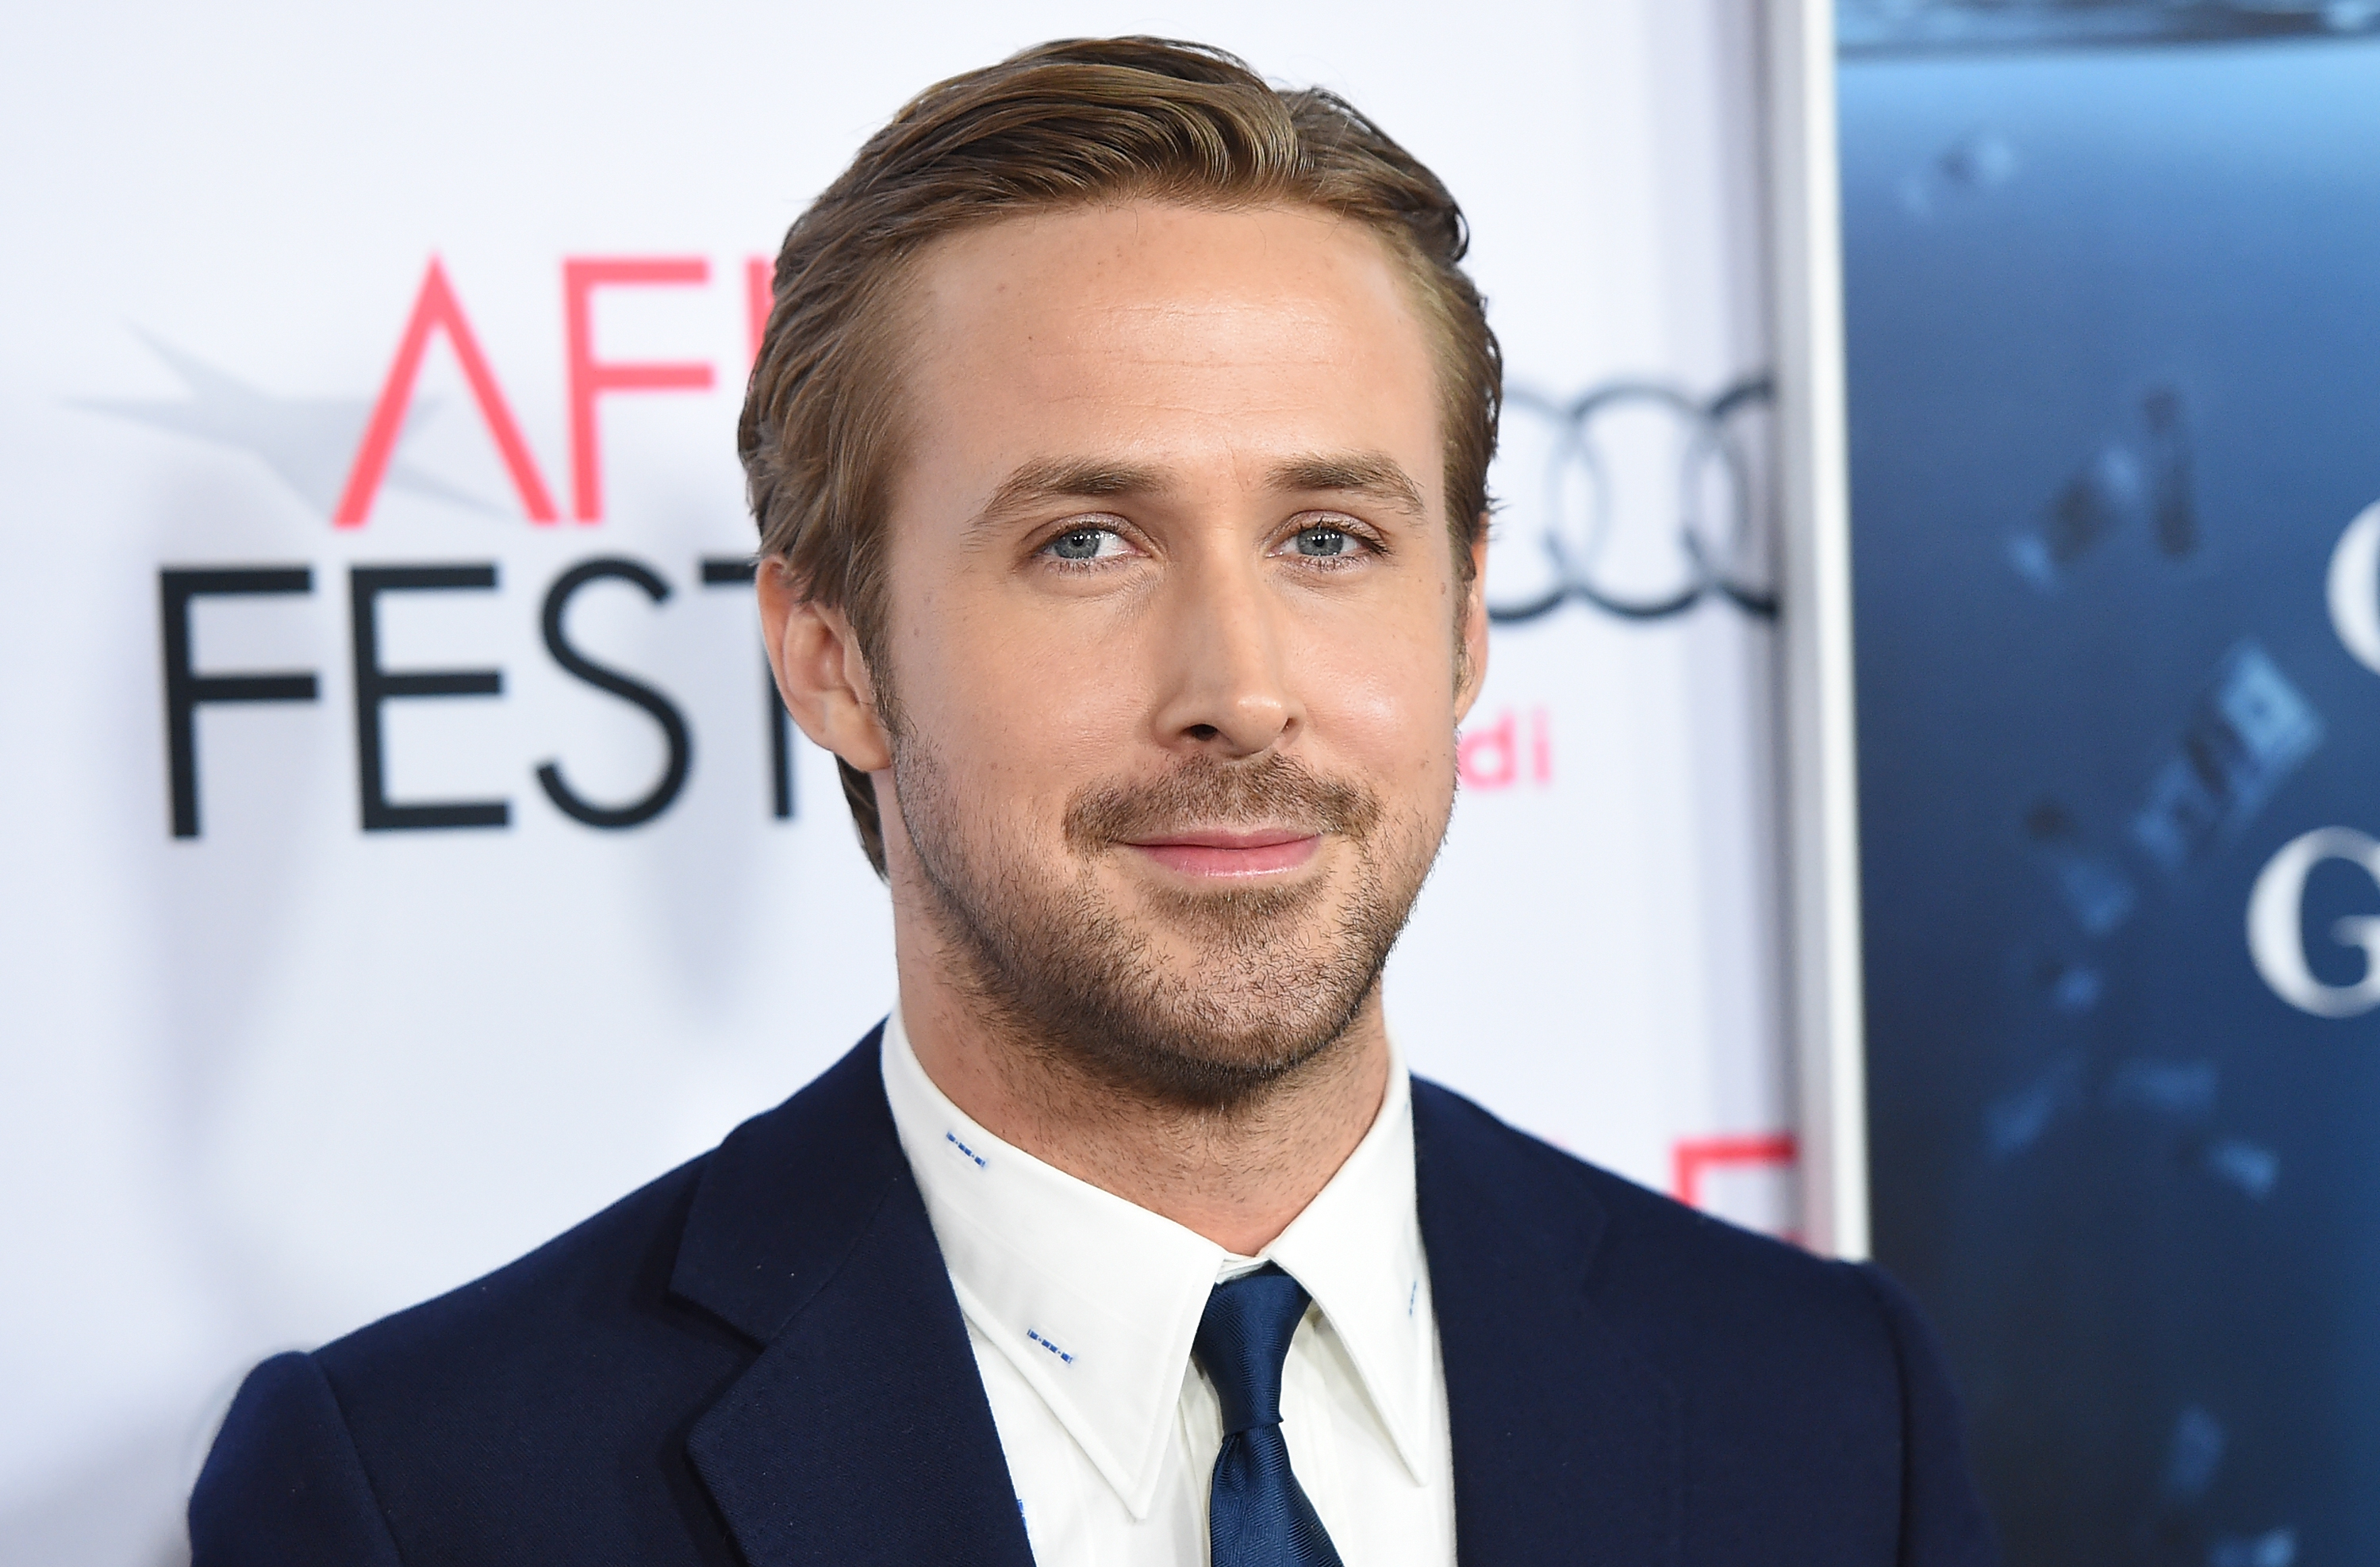 HOLLYWOOD, CA - NOVEMBER 12: Actor Ryan Gosling attends the closing night gala premiere of Paramount Pictures' 'The Big Short' during AFI FEST 2015 at TCL Chinese Theatre on November 12, 2015 in Hollywood, California. (Photo by Jason Merritt/Getty Images)